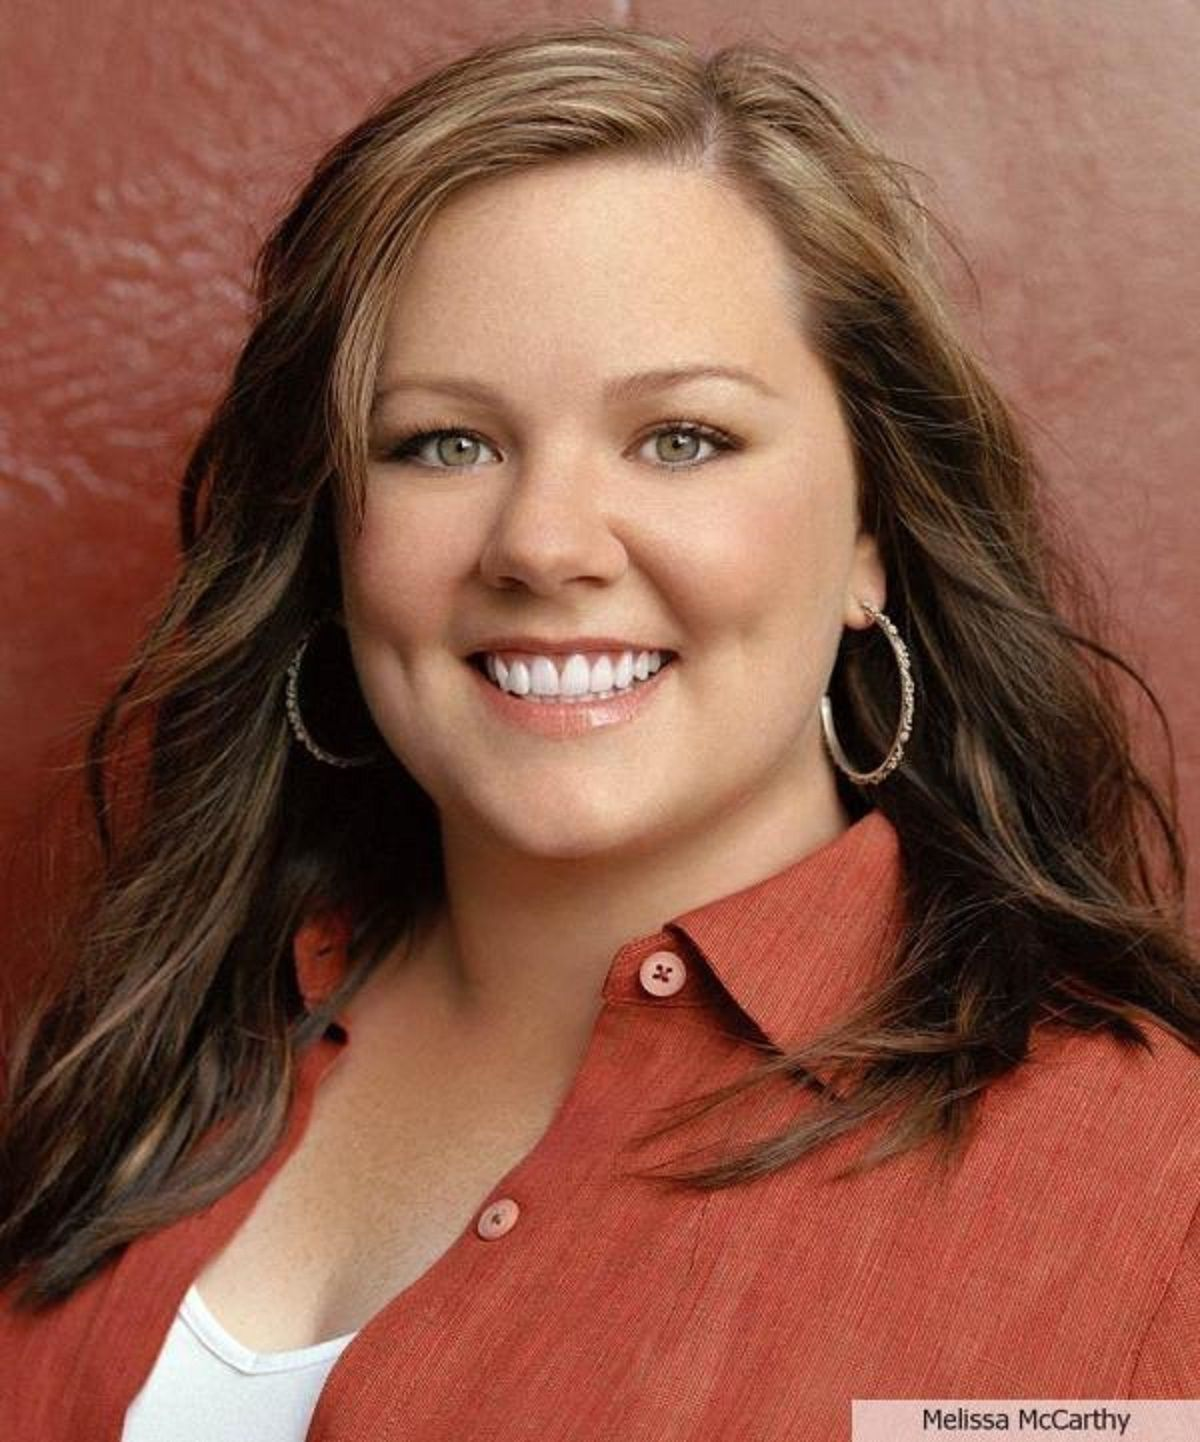 Melissa Mccarthy Hairstyles Captivating Image Result For Melissa Mccarthy  Hairstyles  Pinterest  Melissa